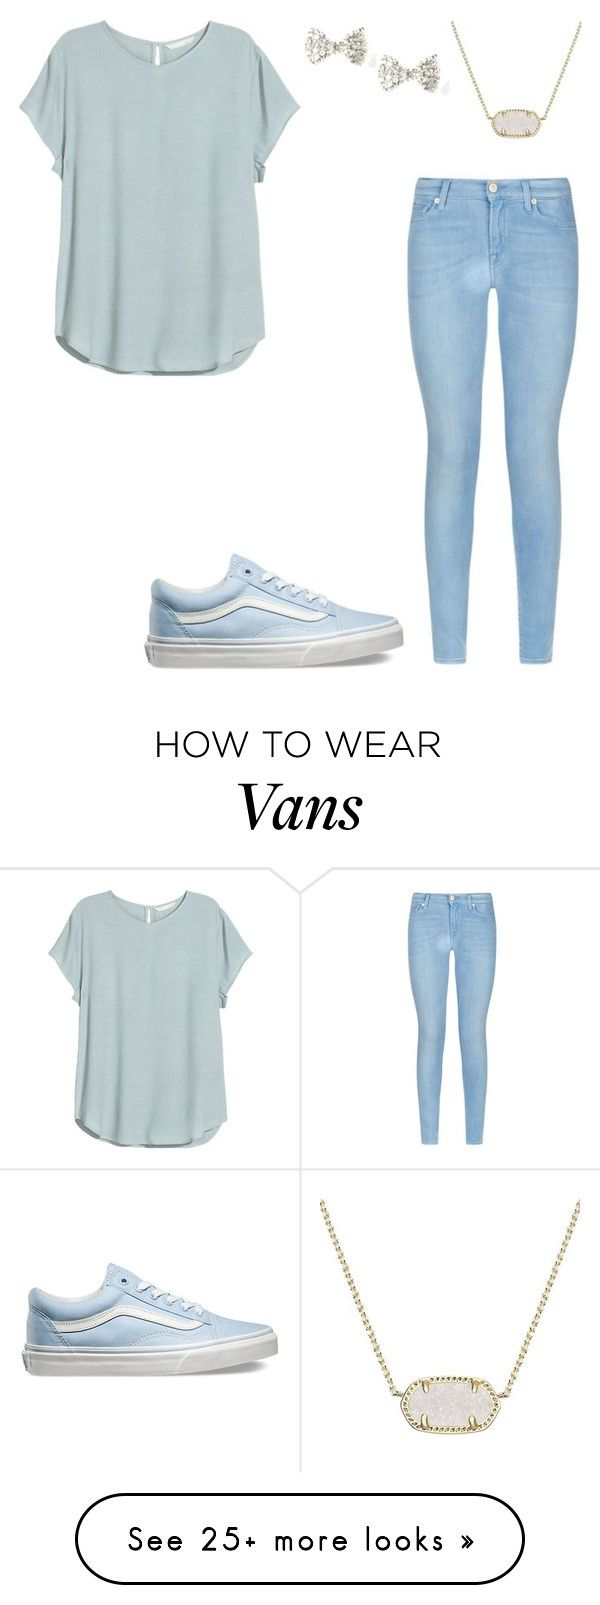 """""""Untitled #310"""" by nelson-iv on Polyvore featuring 7 For All Mankind, Vans, H&M, Kendra Scott, women's clothing, women's fashion, women, female, woman and misses"""